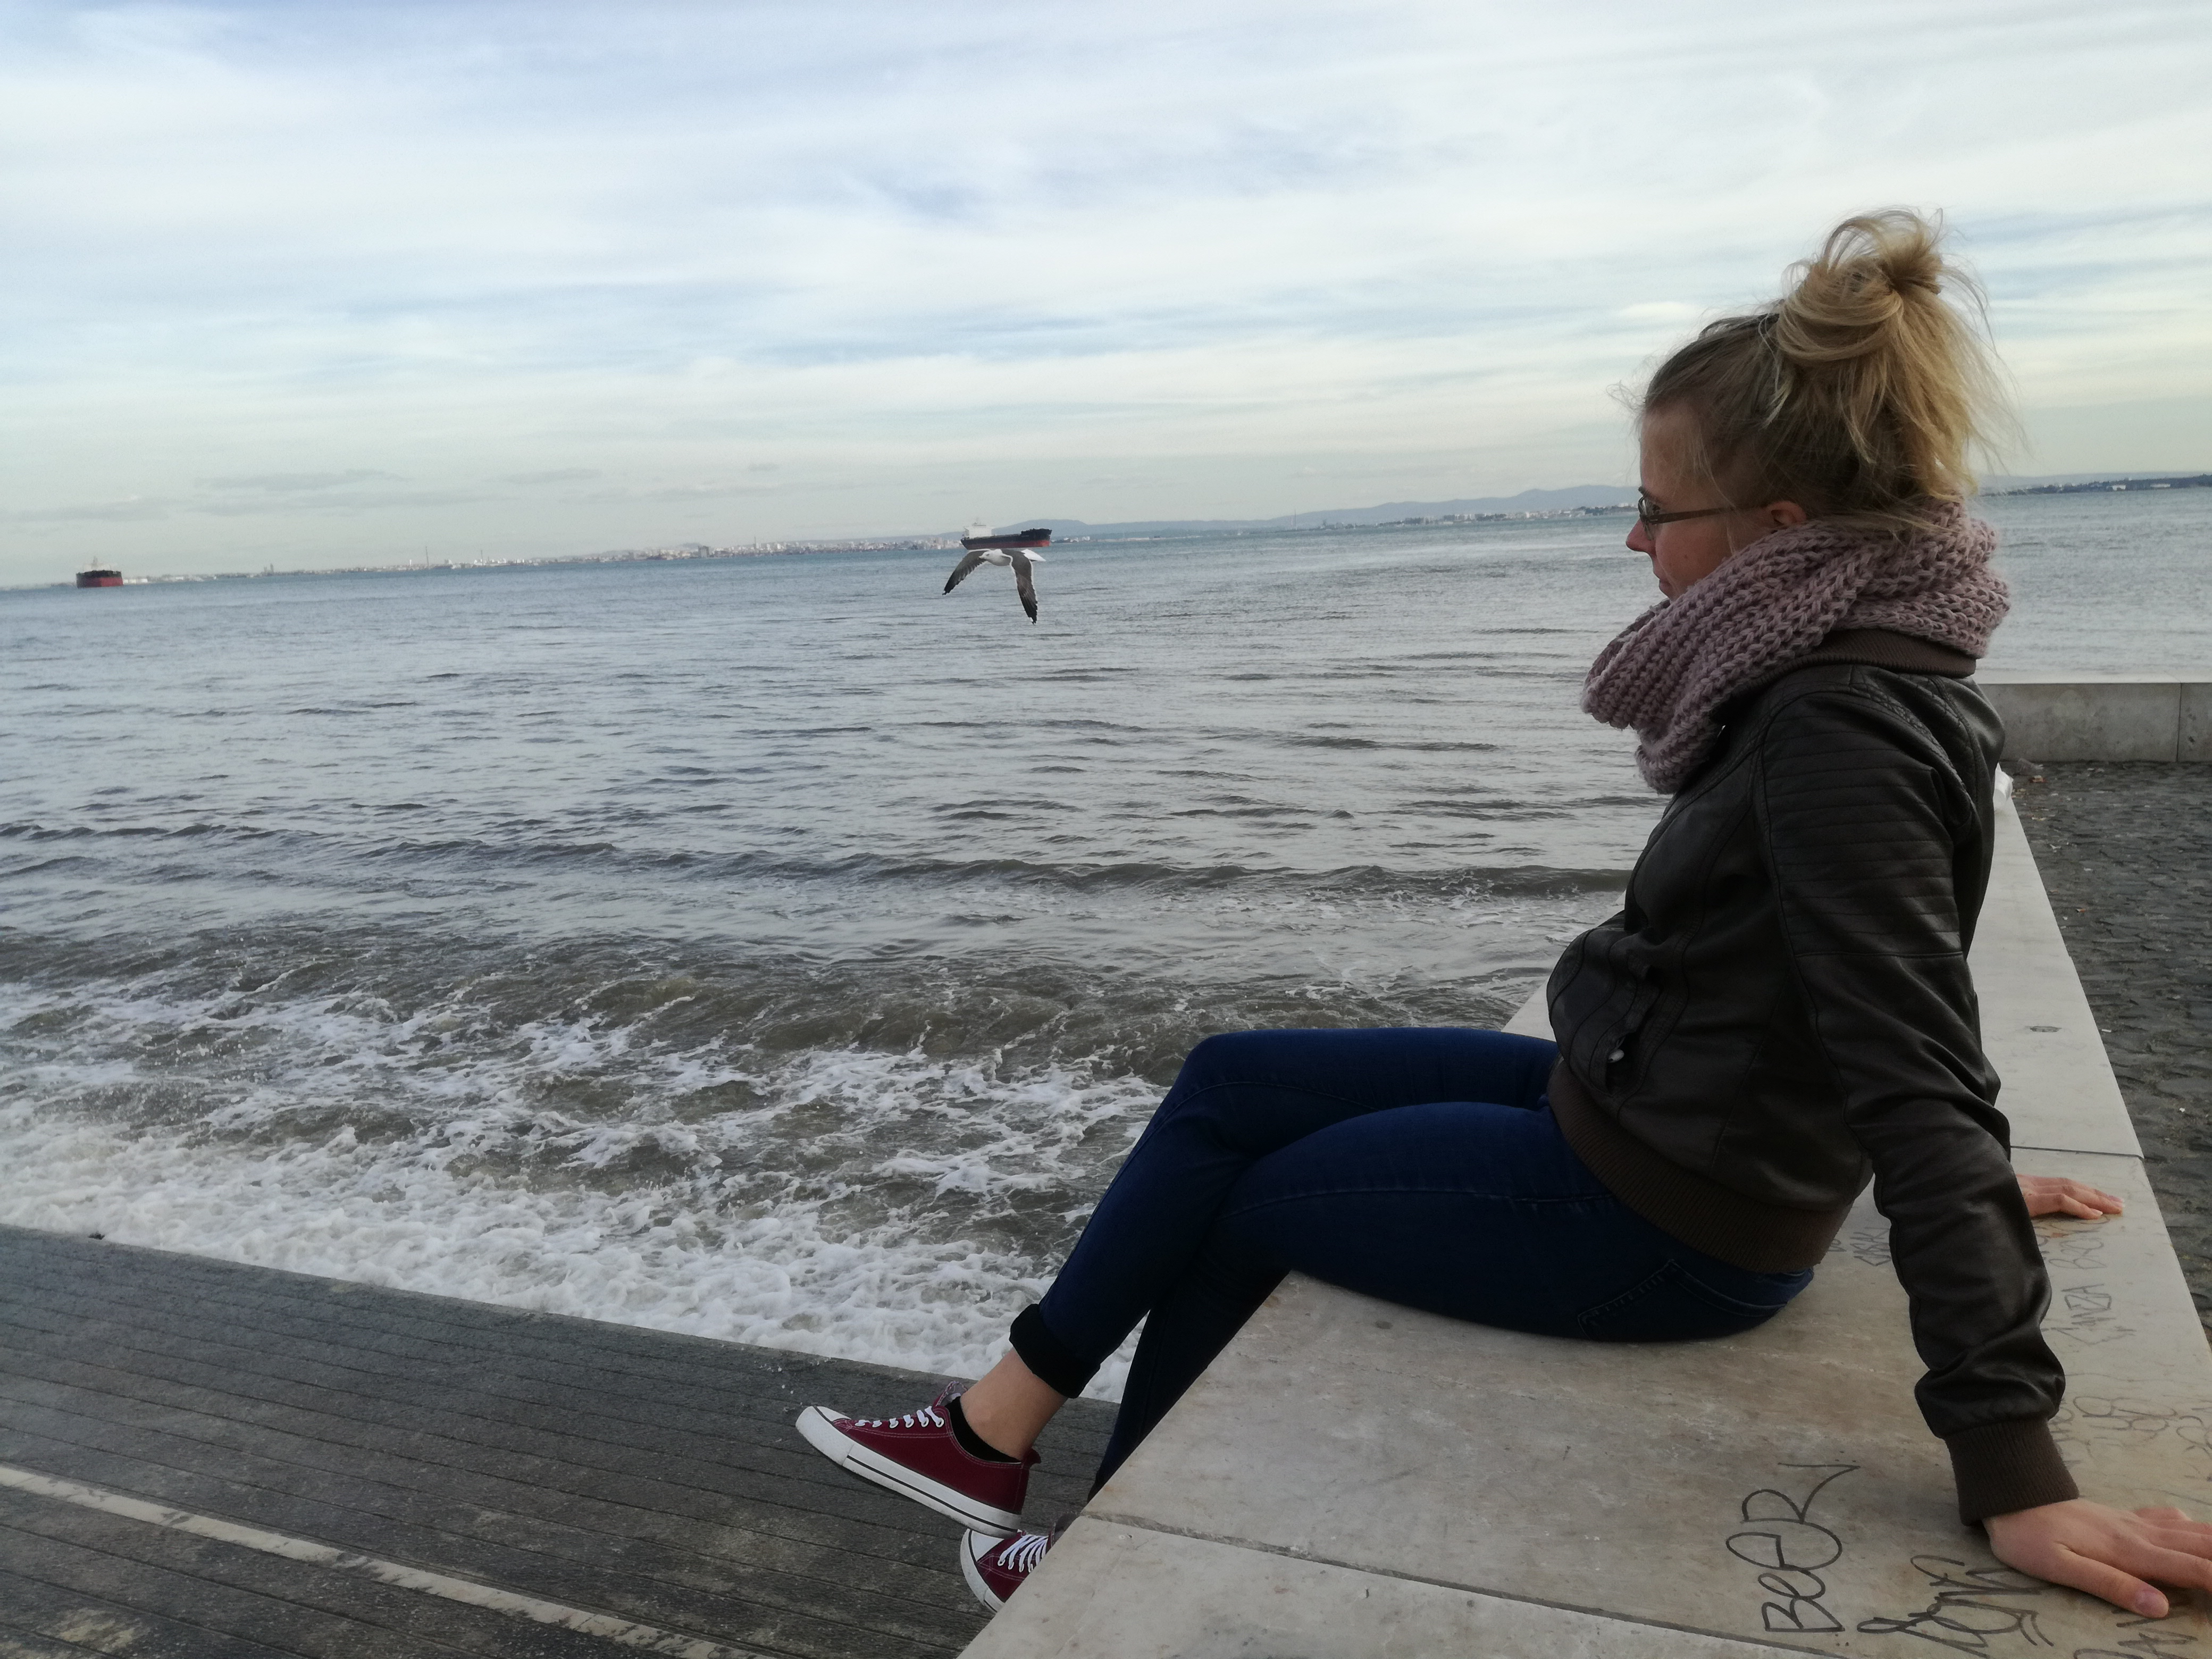 LETS DO IT VOLUNTEERS 2 – ANU ANNUS – 6 months Volunteering in Lisbon, Portugal – Article in English